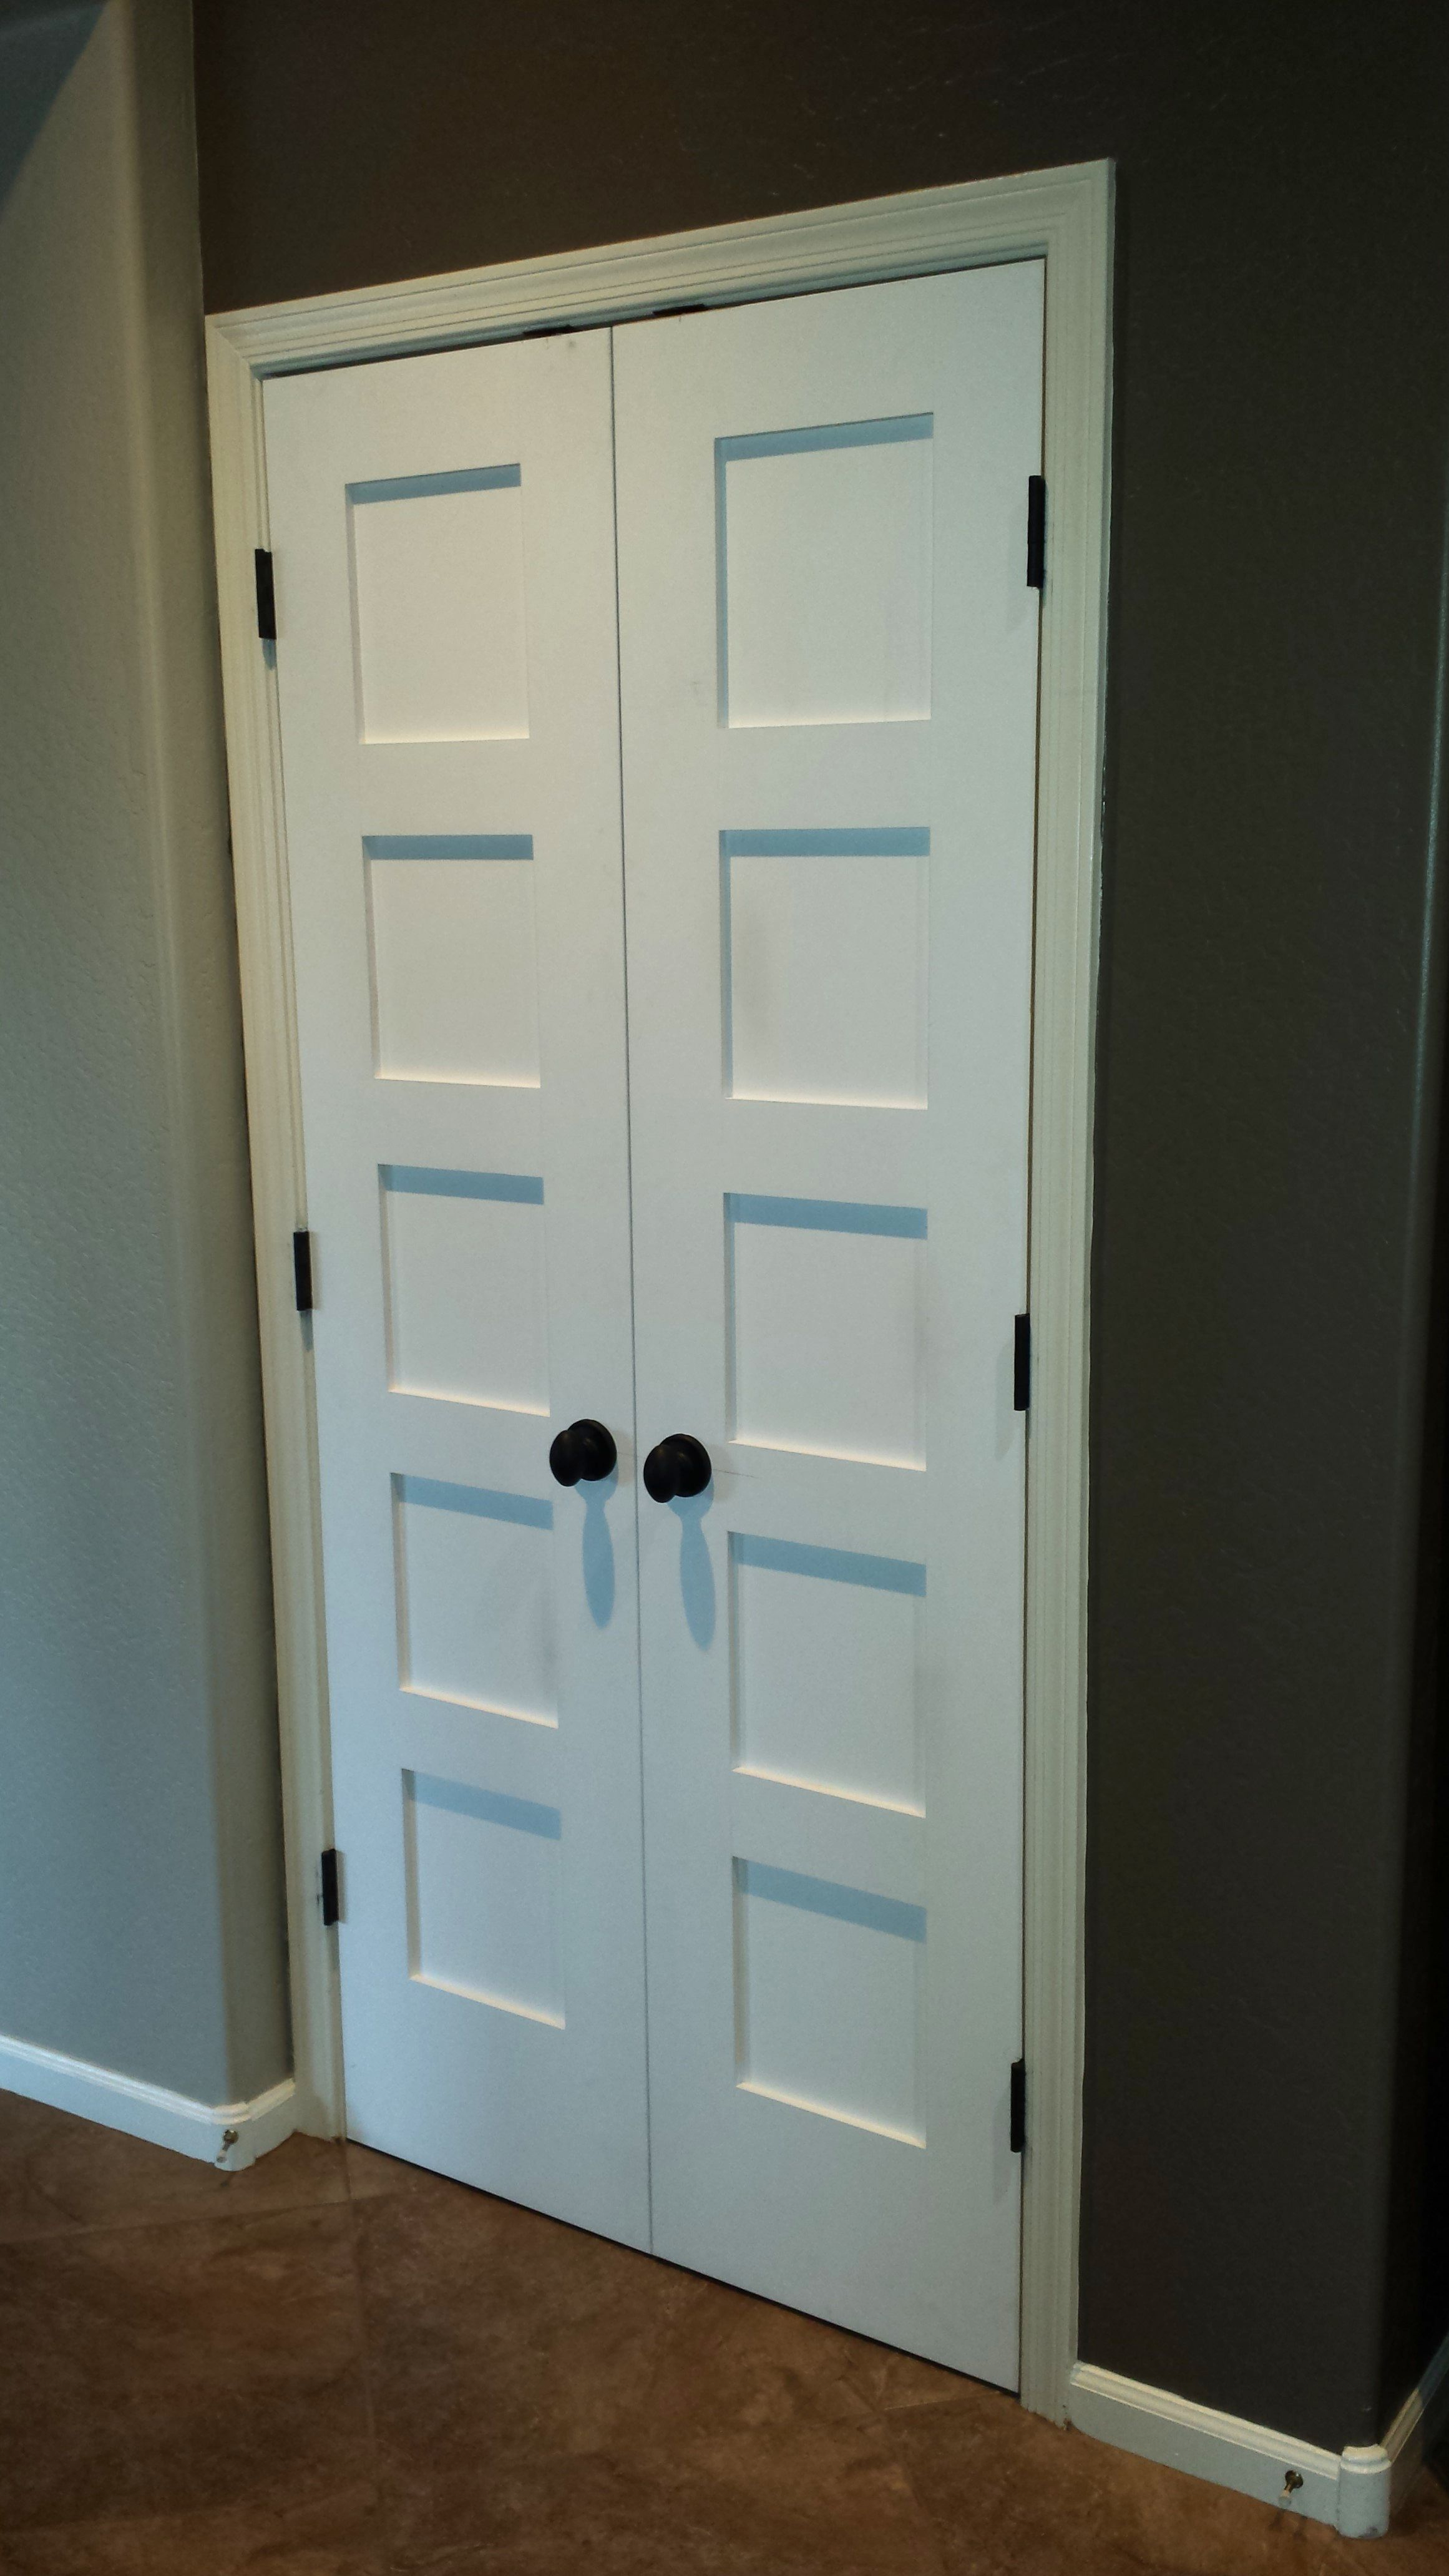 living but pin door french standard have we and a between kitchen currently closet the would doors room